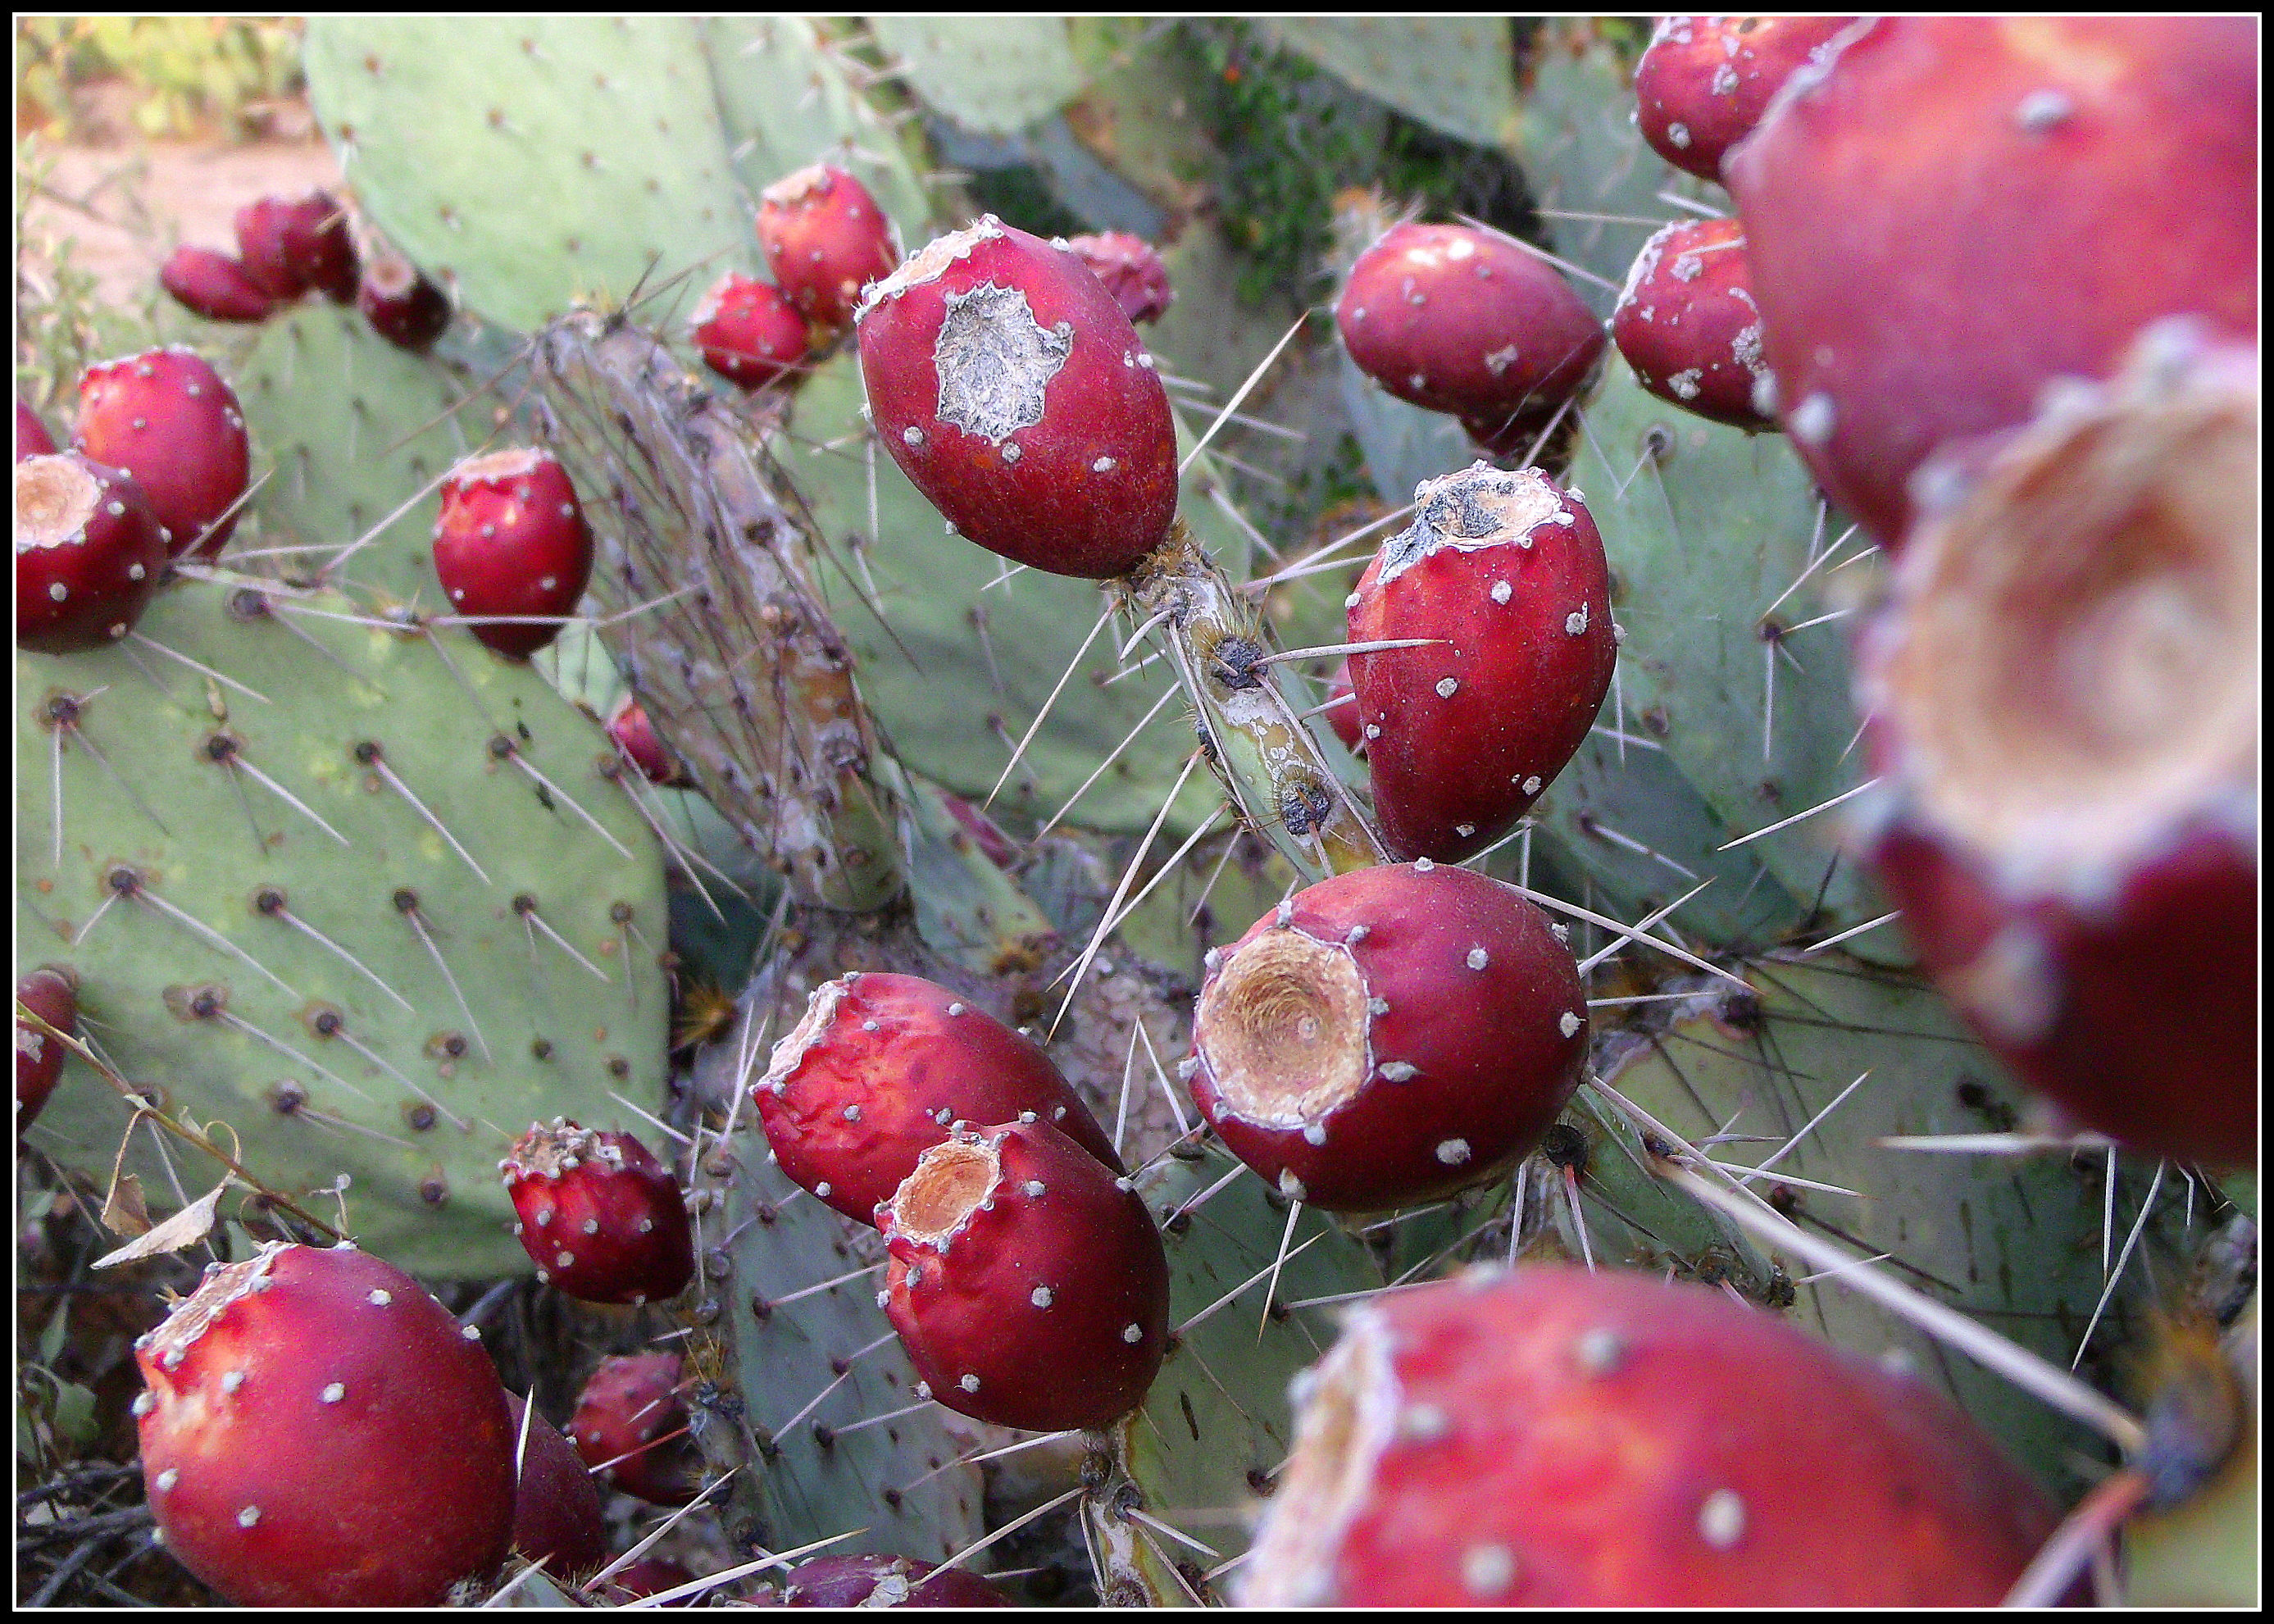 Tucson desert : Scottu0026#39;s Place...Images and Words